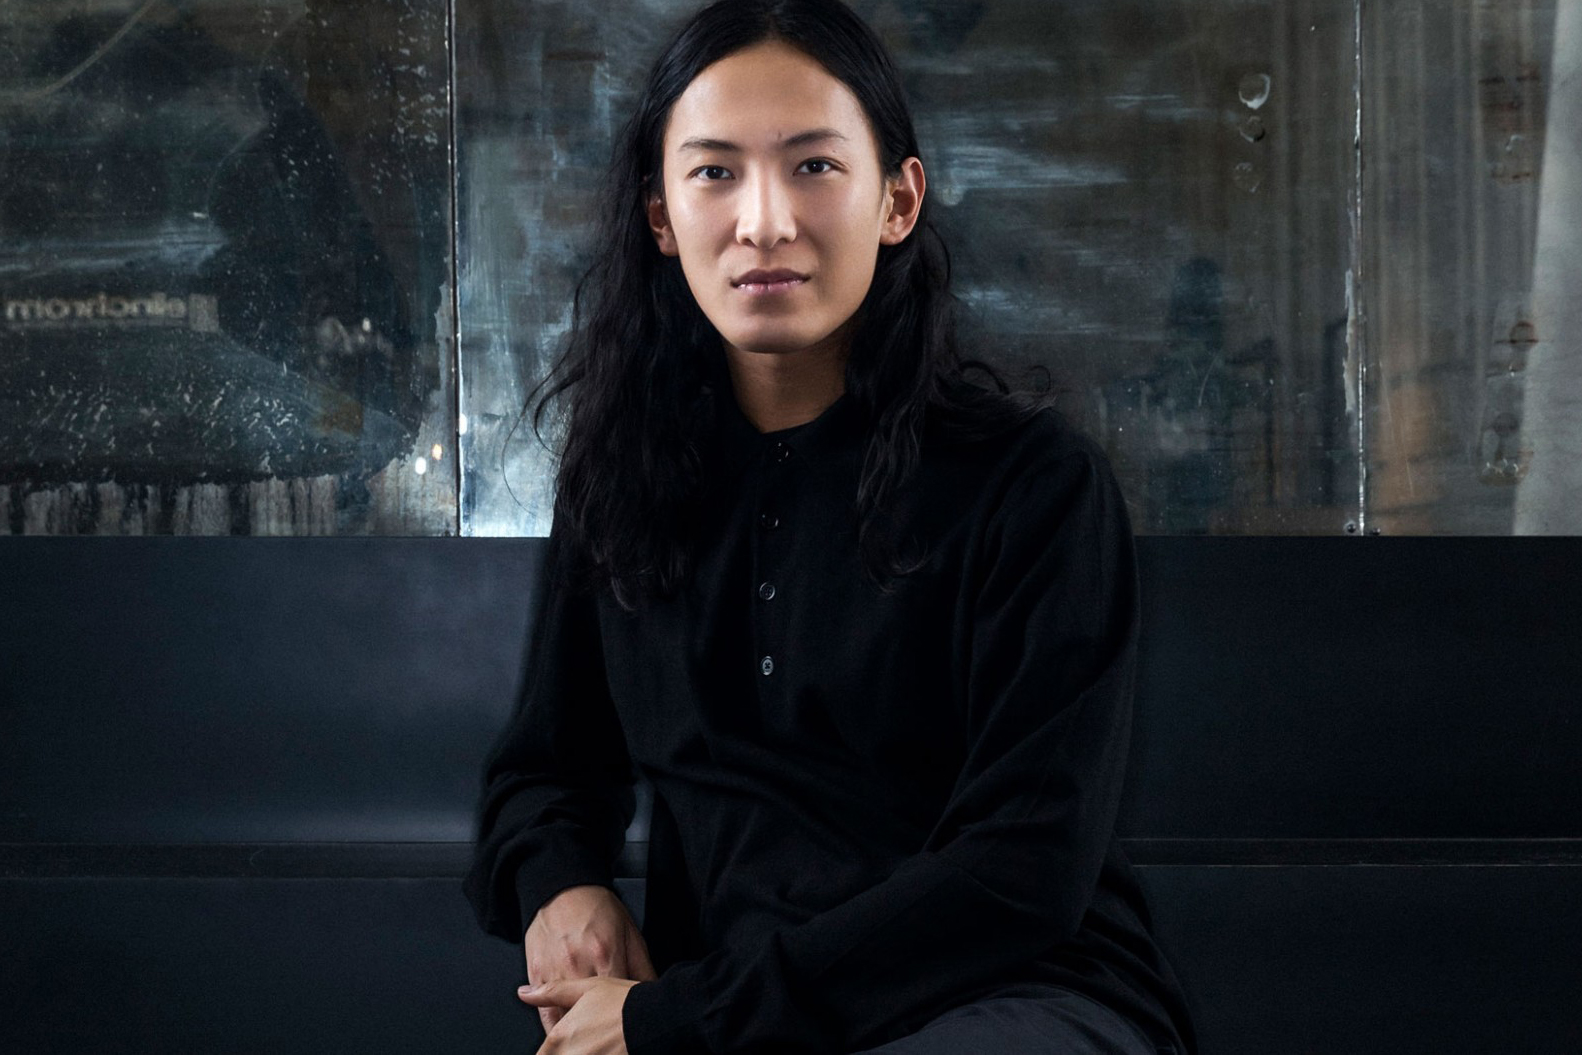 Alexander Wang on Why Retail Is a Thing of the Past